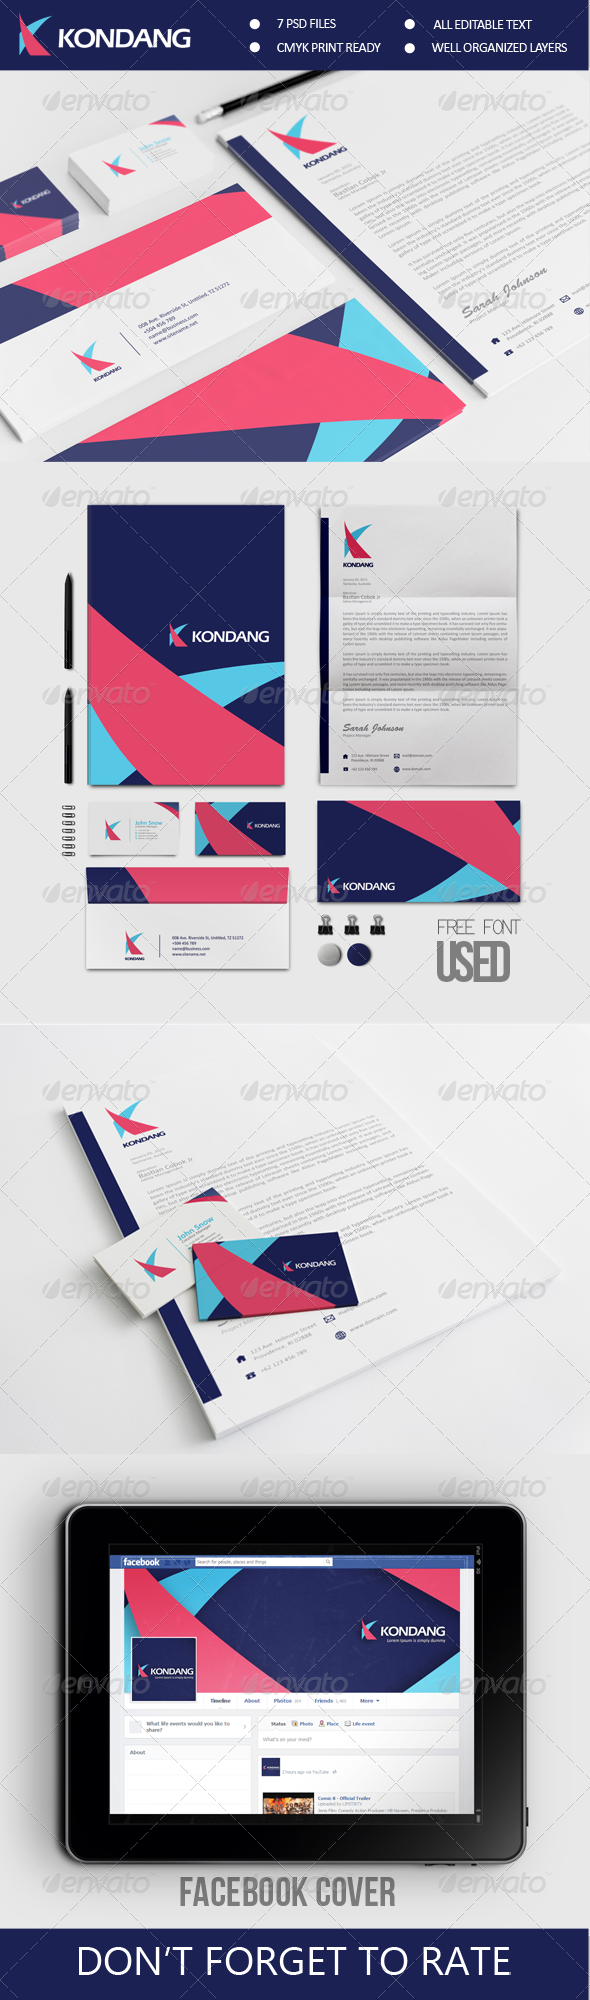 GraphicRiver Kondang Corporate Identity 6685864